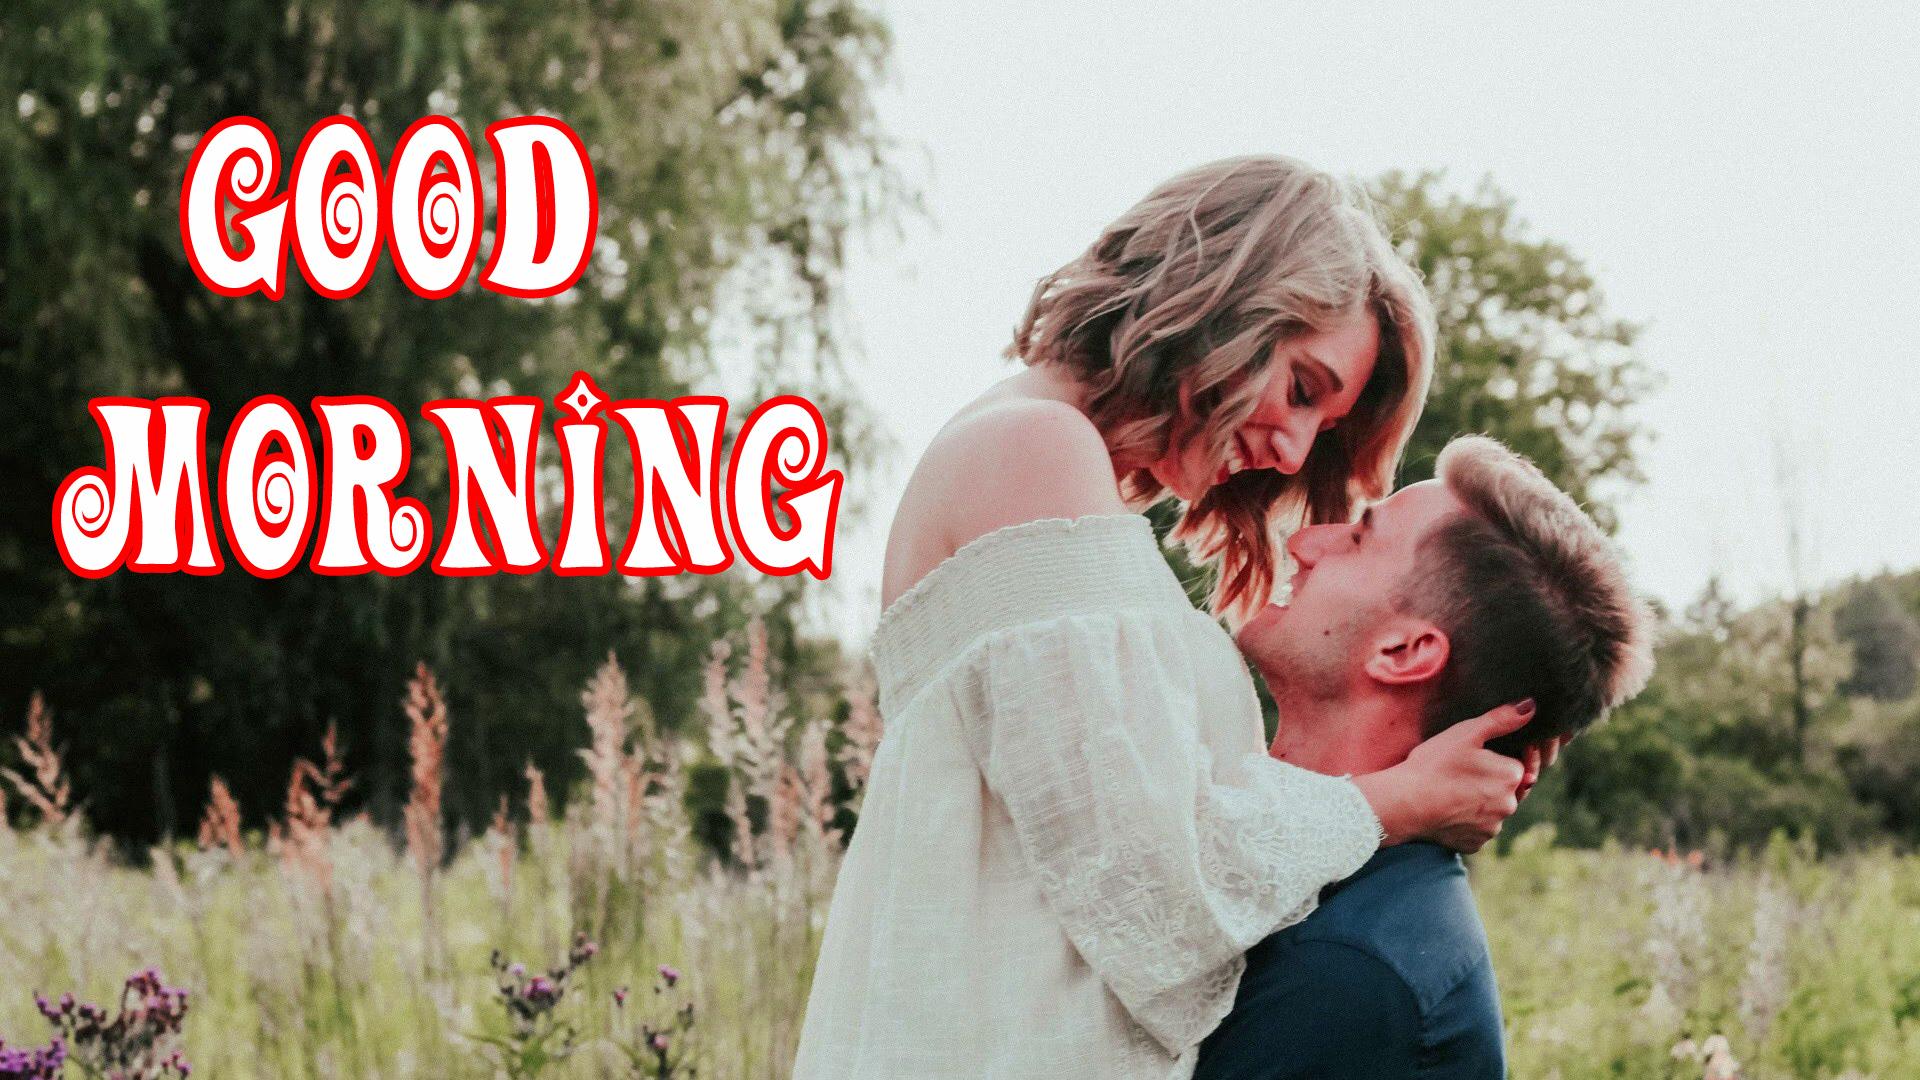 sweet romantic good morning image Pic Wallpaper for Facebook